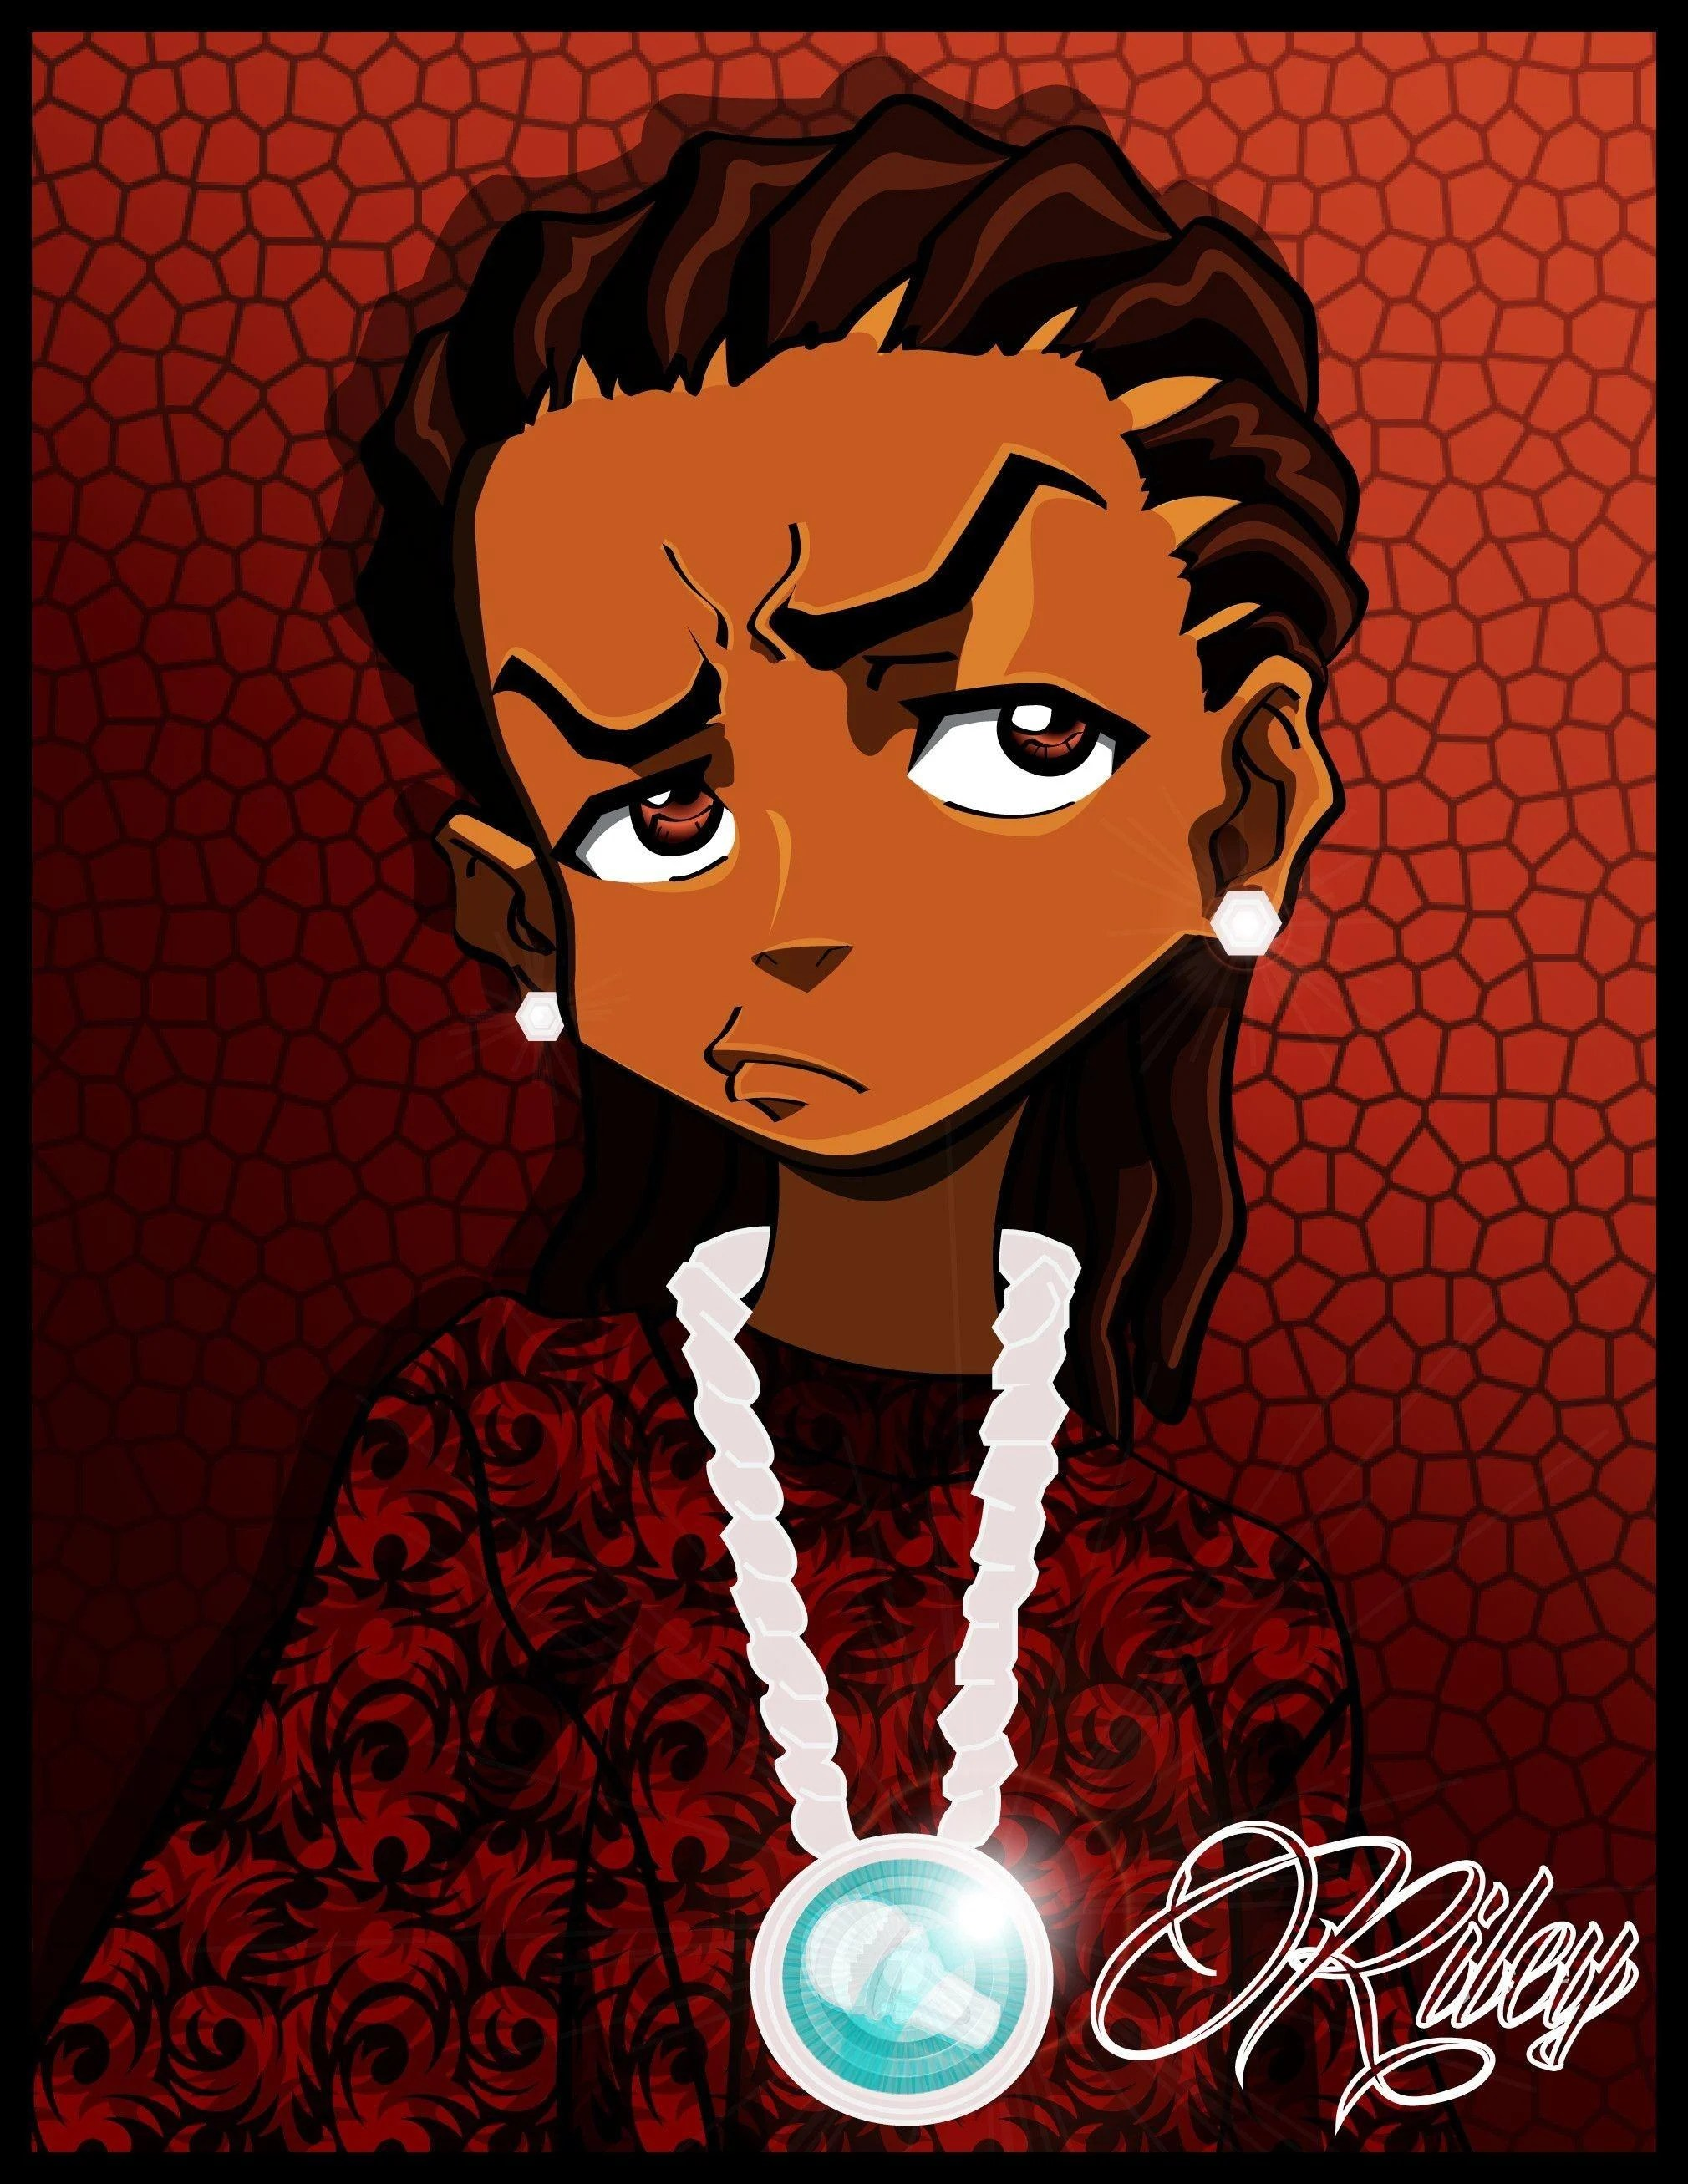 Blood Gang Cartoon : blood, cartoon, Boondocks, Wallpapers, Wallpaper